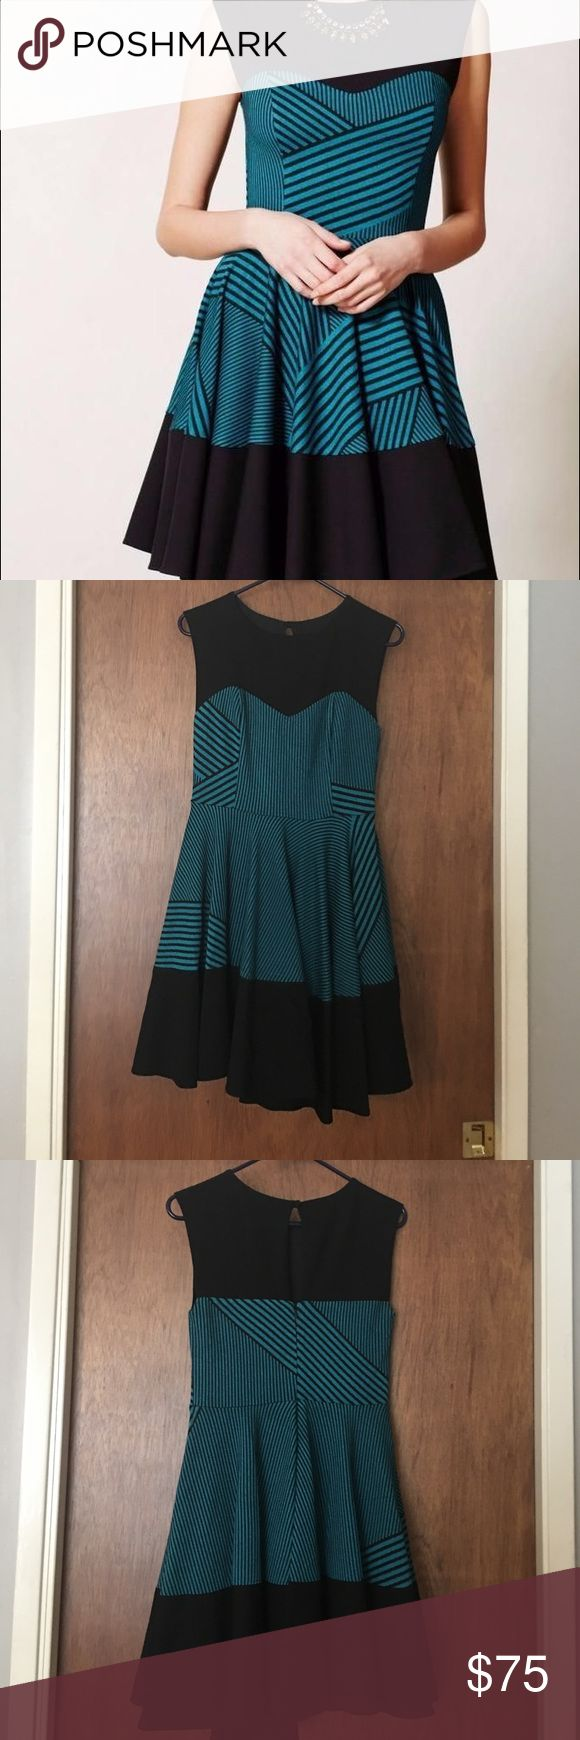 Eva Franco Sleeveless Dress (Anthropologie) New with tags Eva Franco turquoise and black striped heavy weight jersey dress. Purchased from Anthropologie. Anthropologie Dresses